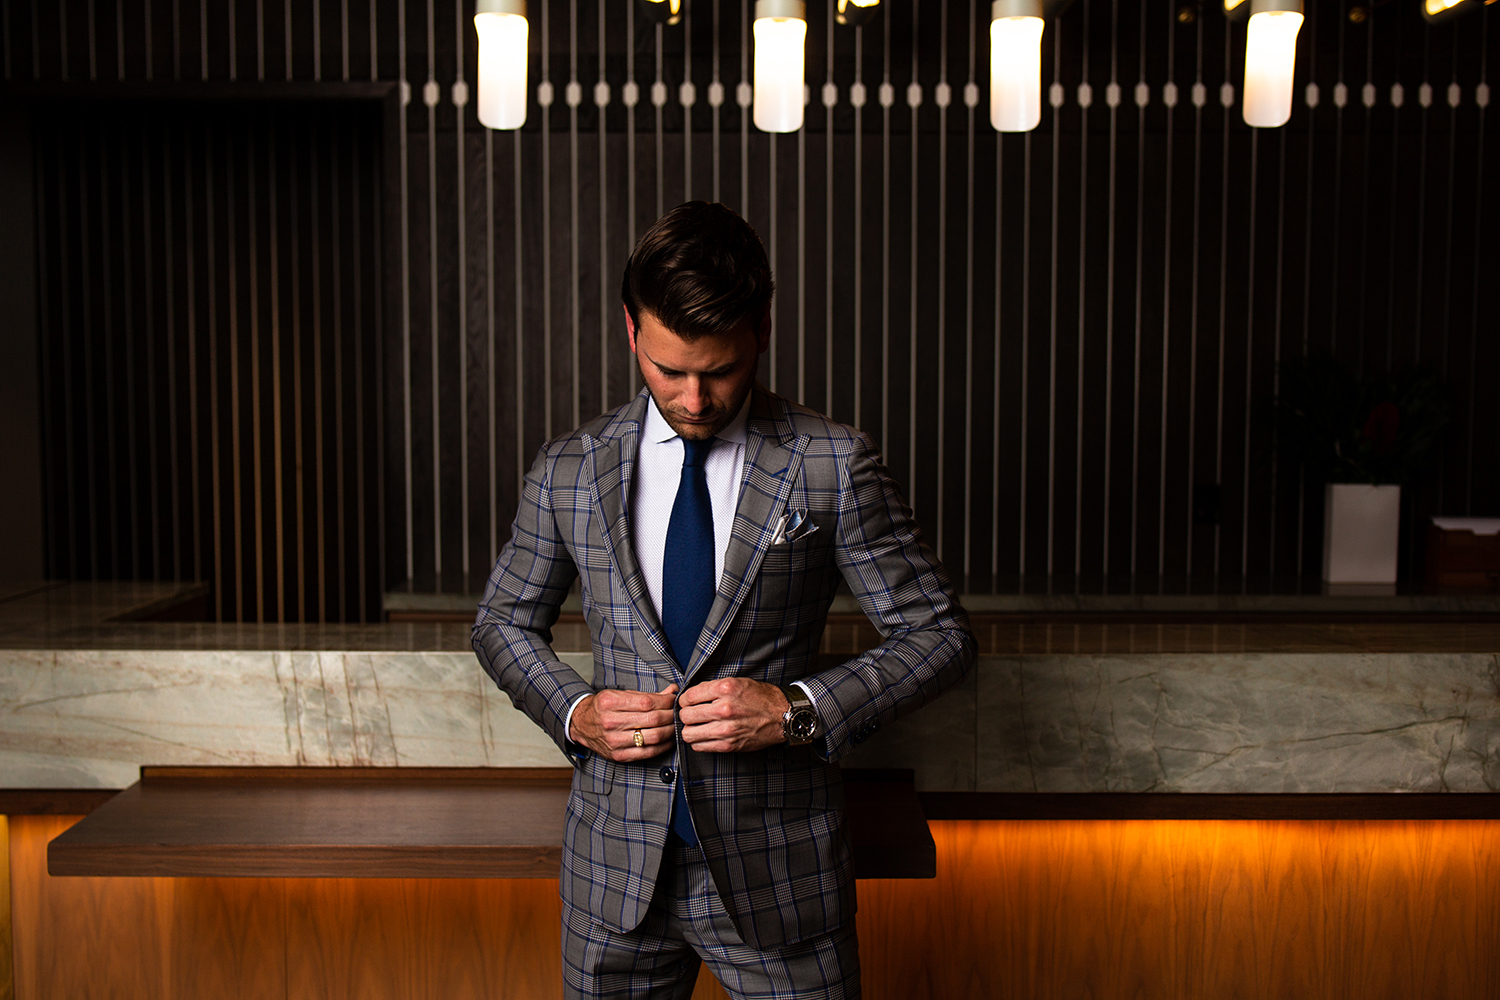 Stephen wearing a custom suit designed by Richards Bespoke at The Thompson Hotel Nashville